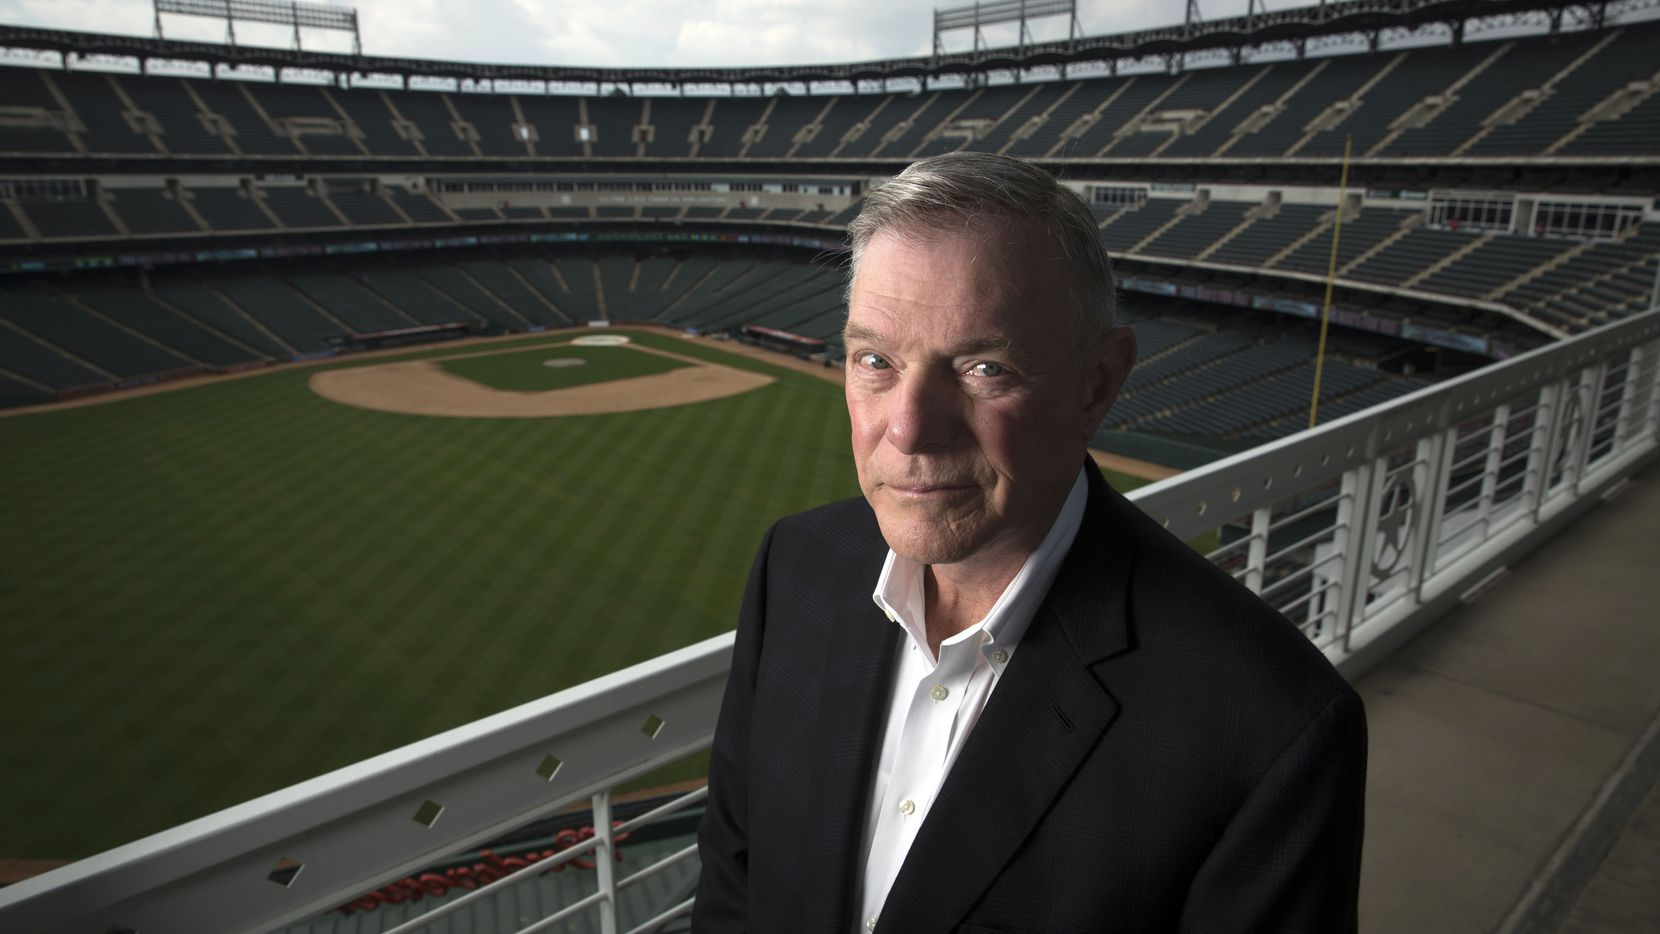 Ray Davis, co-owner and co-chairman of the Texas Rangers, photographed Wednesday, April 1, 2015 at Globe Life Ballpark in Arlington, Texas. (G.J. McCarthy/The Dallas Morning News)